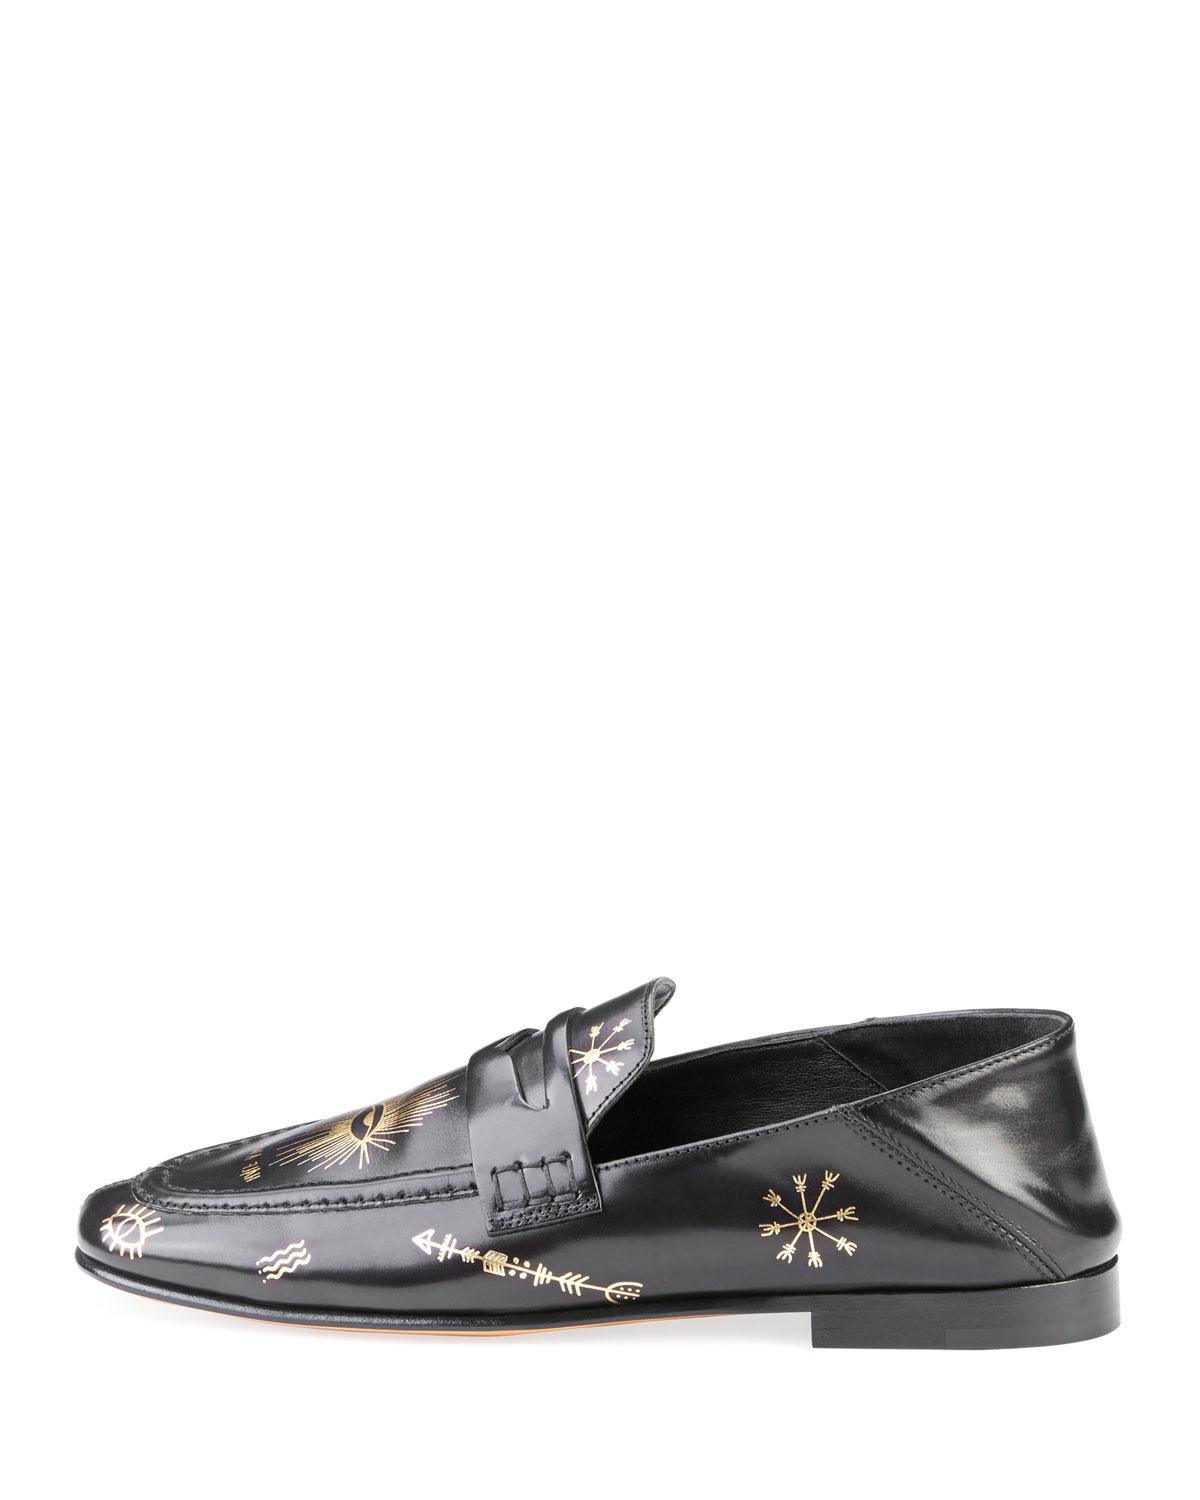 d70d81ad218 Lyst - Isabel Marant Fezzy Icon-print Leather Loafer Mule in Black